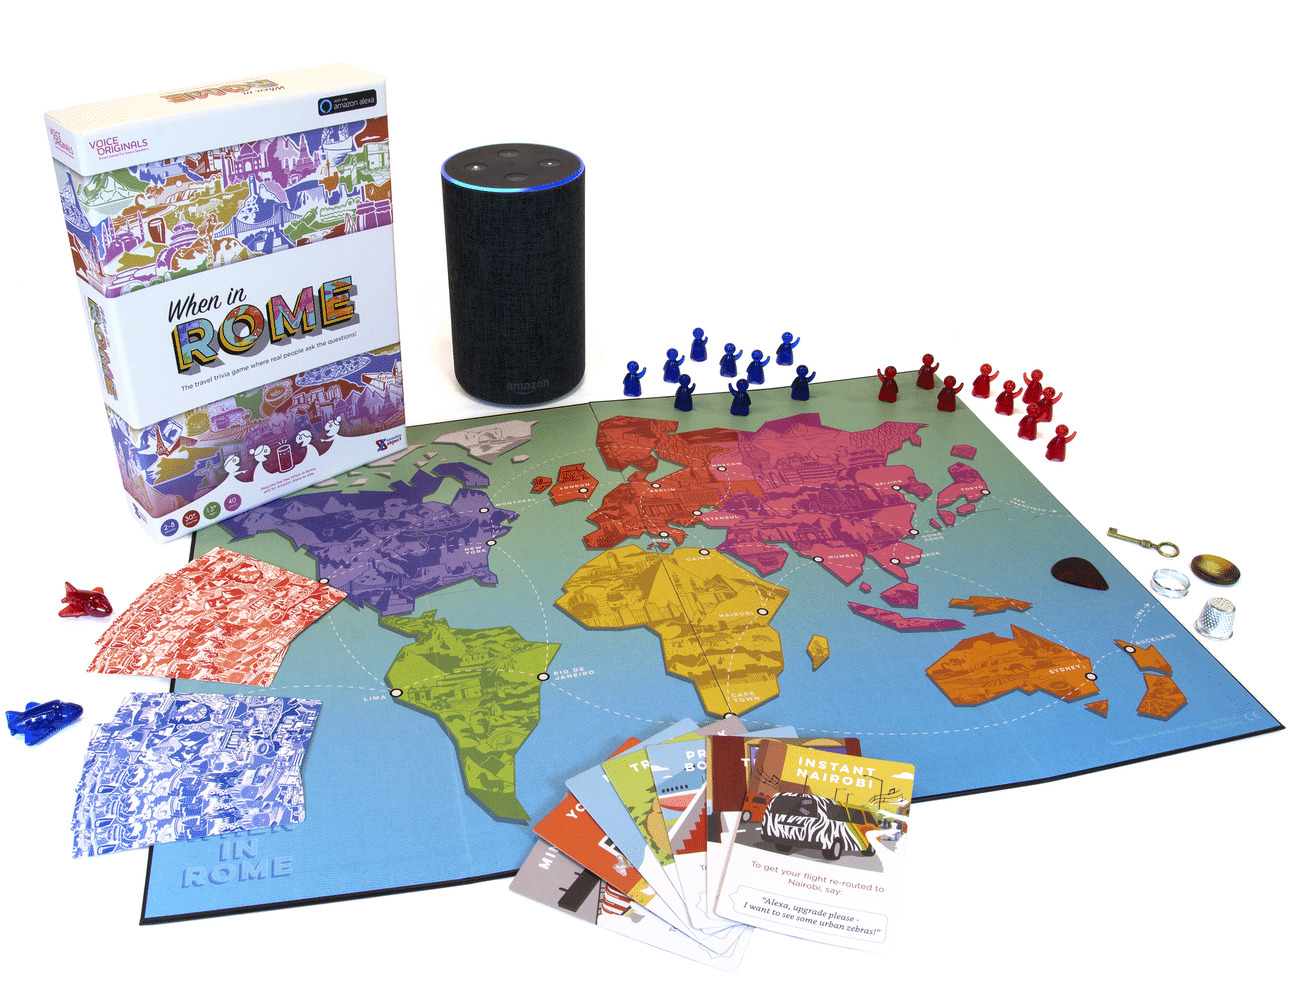 Voice Originals: When In Rome is a board game you play with your ALEXA SPEAKER